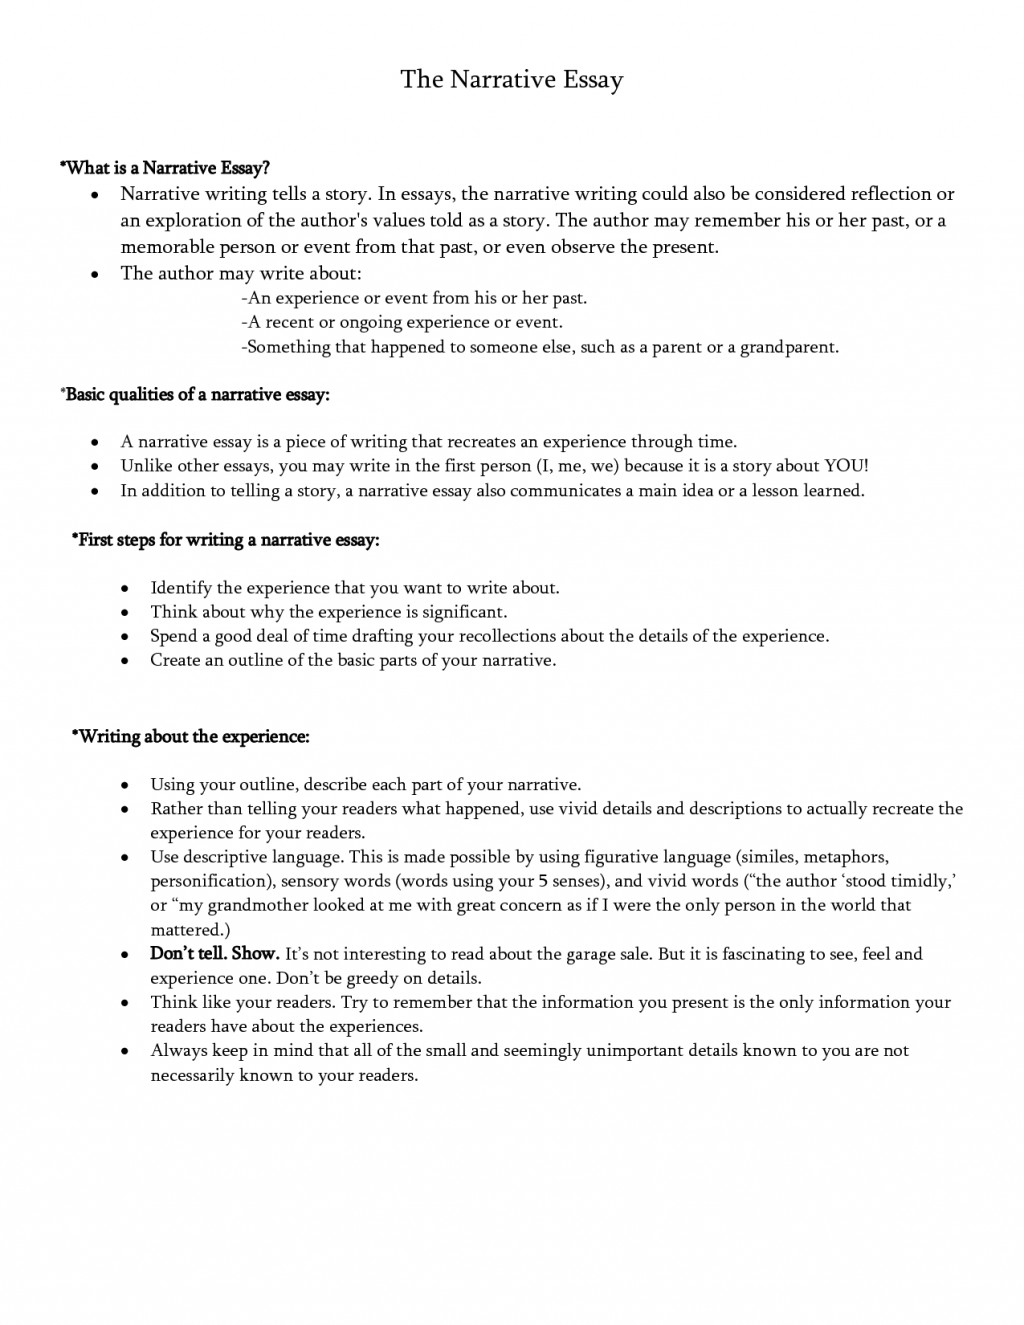 016 Ideas Collection Reflective Narrative Essays Grade Simple Narration Description Image Of Fearsome About Family Essay Topics For O Levels Personal Traveling Large